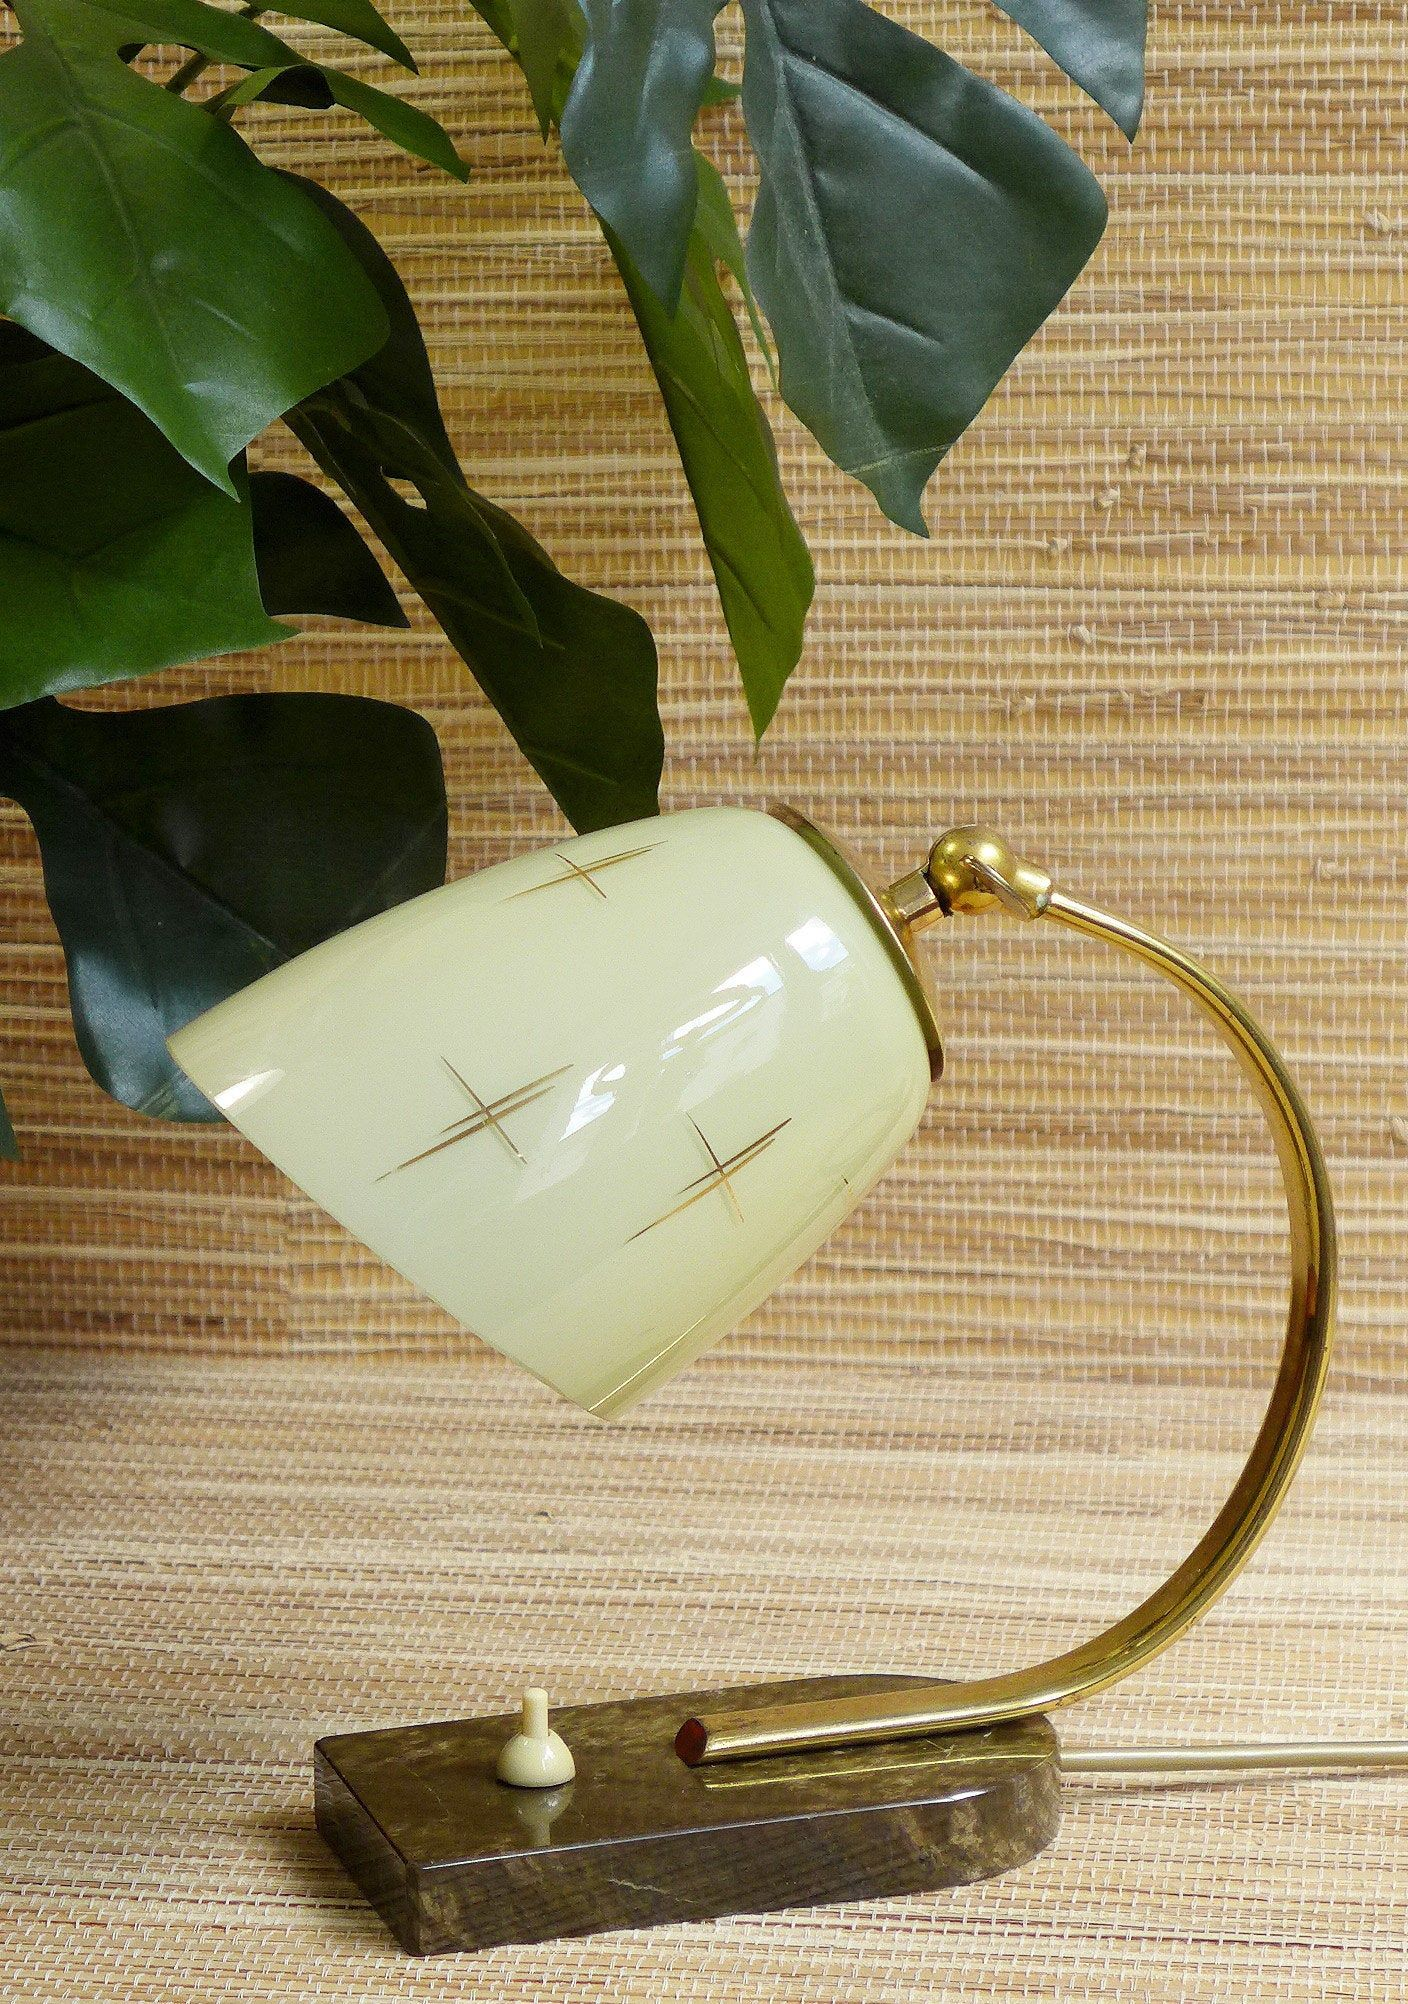 Vintage Bedside Lamp 1950s Table Night Light Mid Century Mcm 1940s 1950s 1960s Desktop Lamp Rockabilly Brass Glass Tiki Marble Bedside Lamp Desktop Lamp Bedside